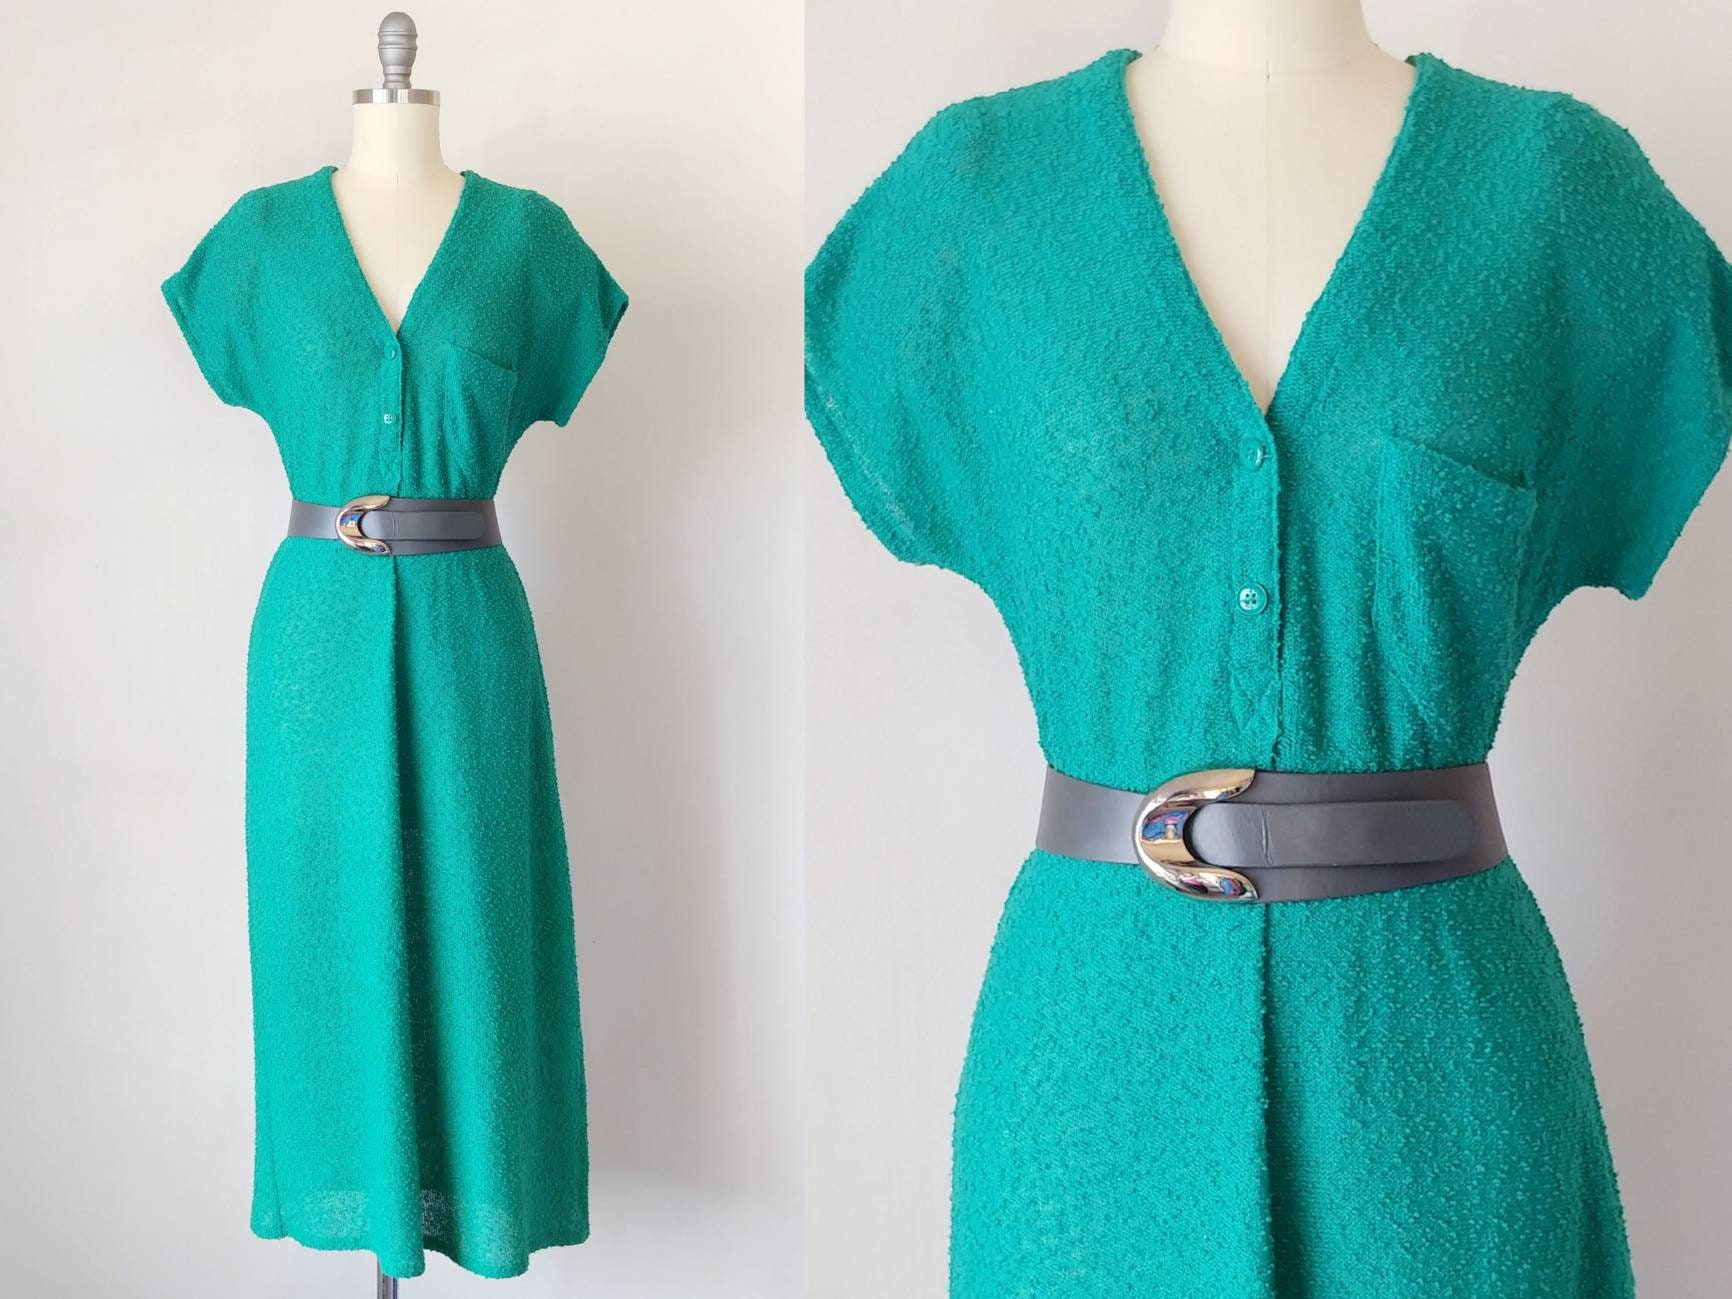 80s Dresses | Casual to Party Dresses 1980S Diane Von Furstenberg Emerald Green Boucle Knit Henley Dress  Vintage 80S Button Down Shirt Womens Clothing Small $0.00 AT vintagedancer.com